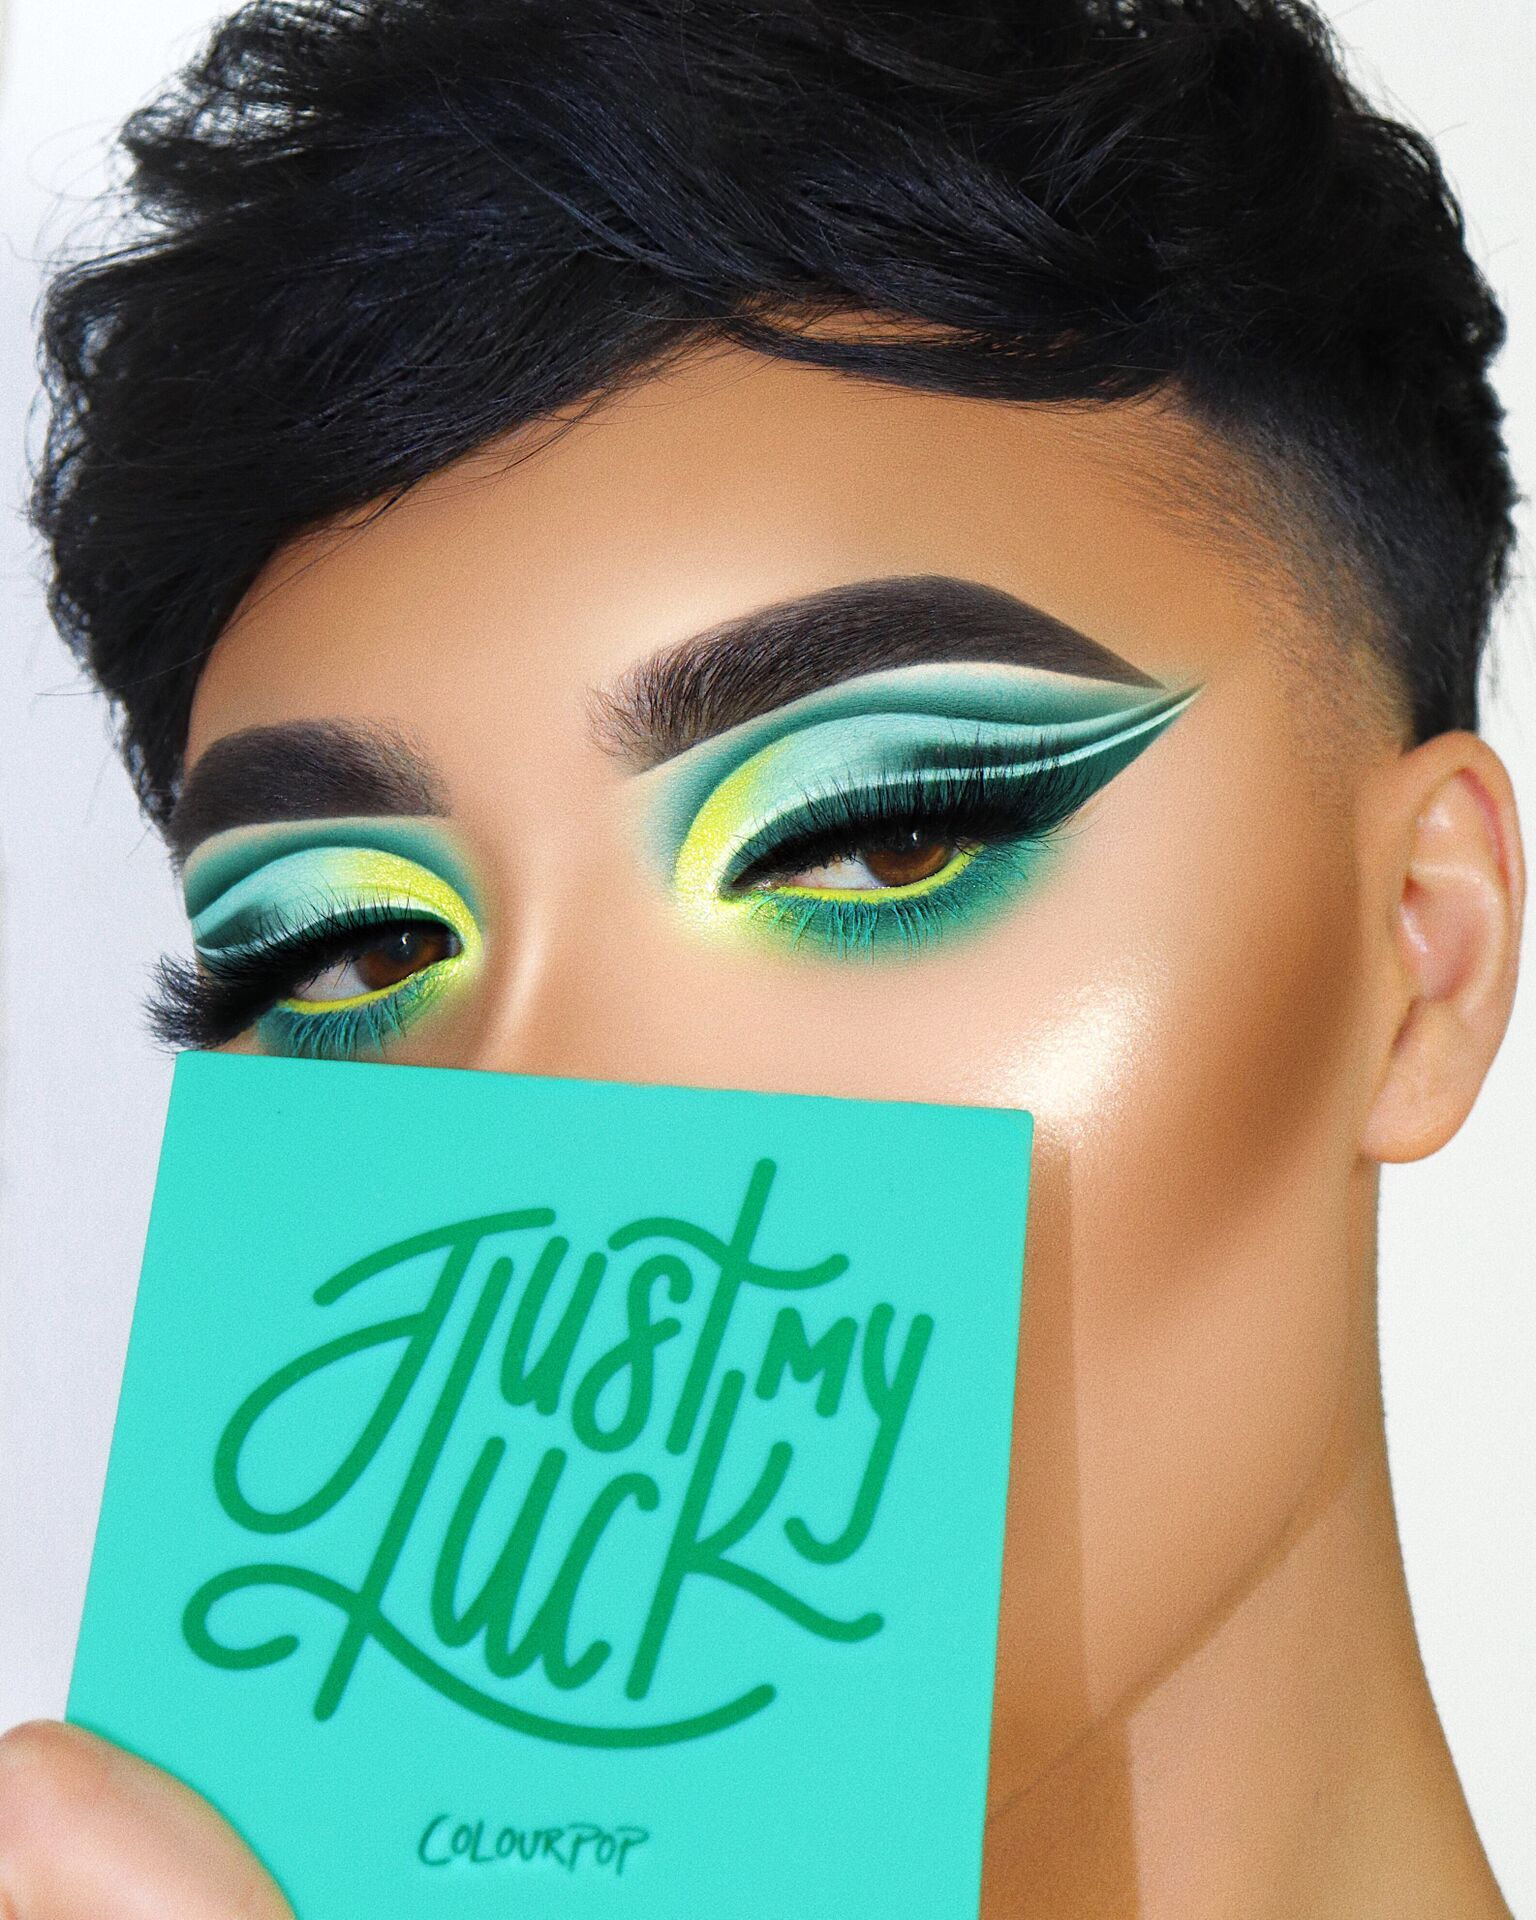 Using Just My Luck Palette on the eyes Eyeshadow makeup